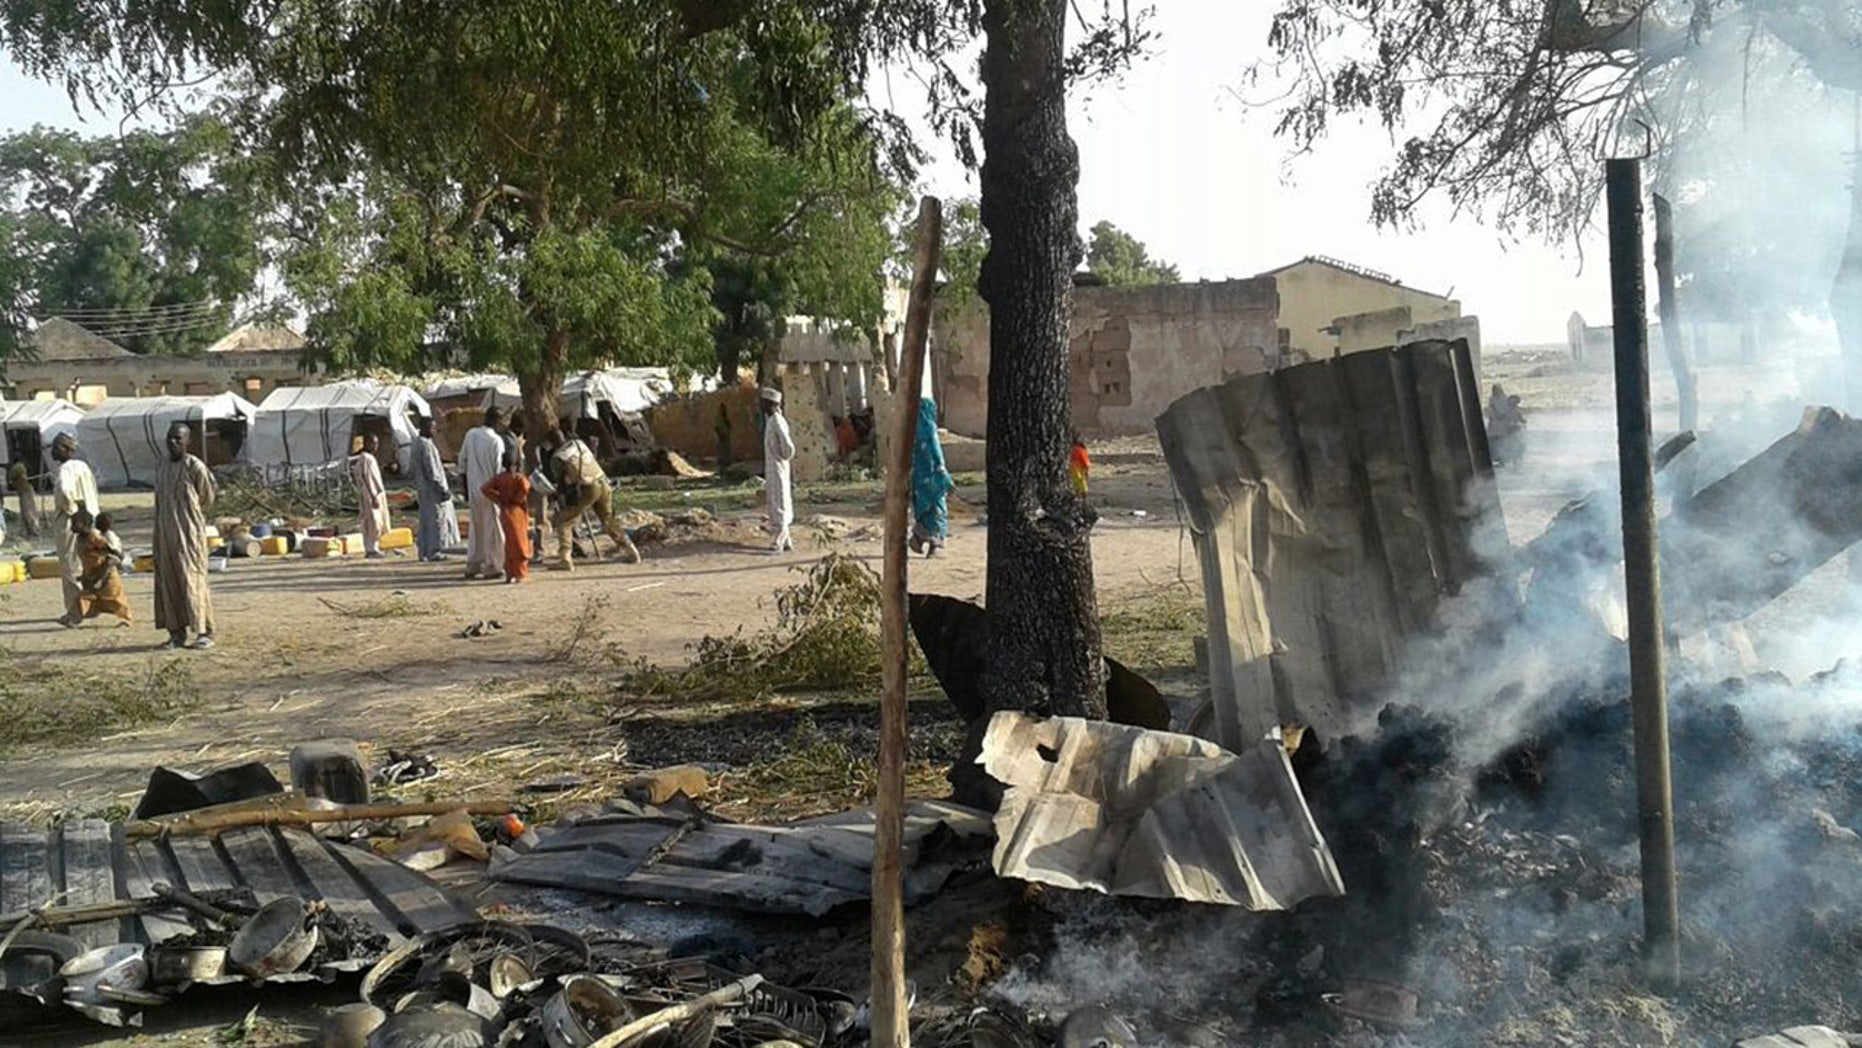 In this image supplied by MSF, smoke rises from a burnt out shelter at a camp for displaced people in Rann, Nigeria, Tuesday Jan. 17, 2017.